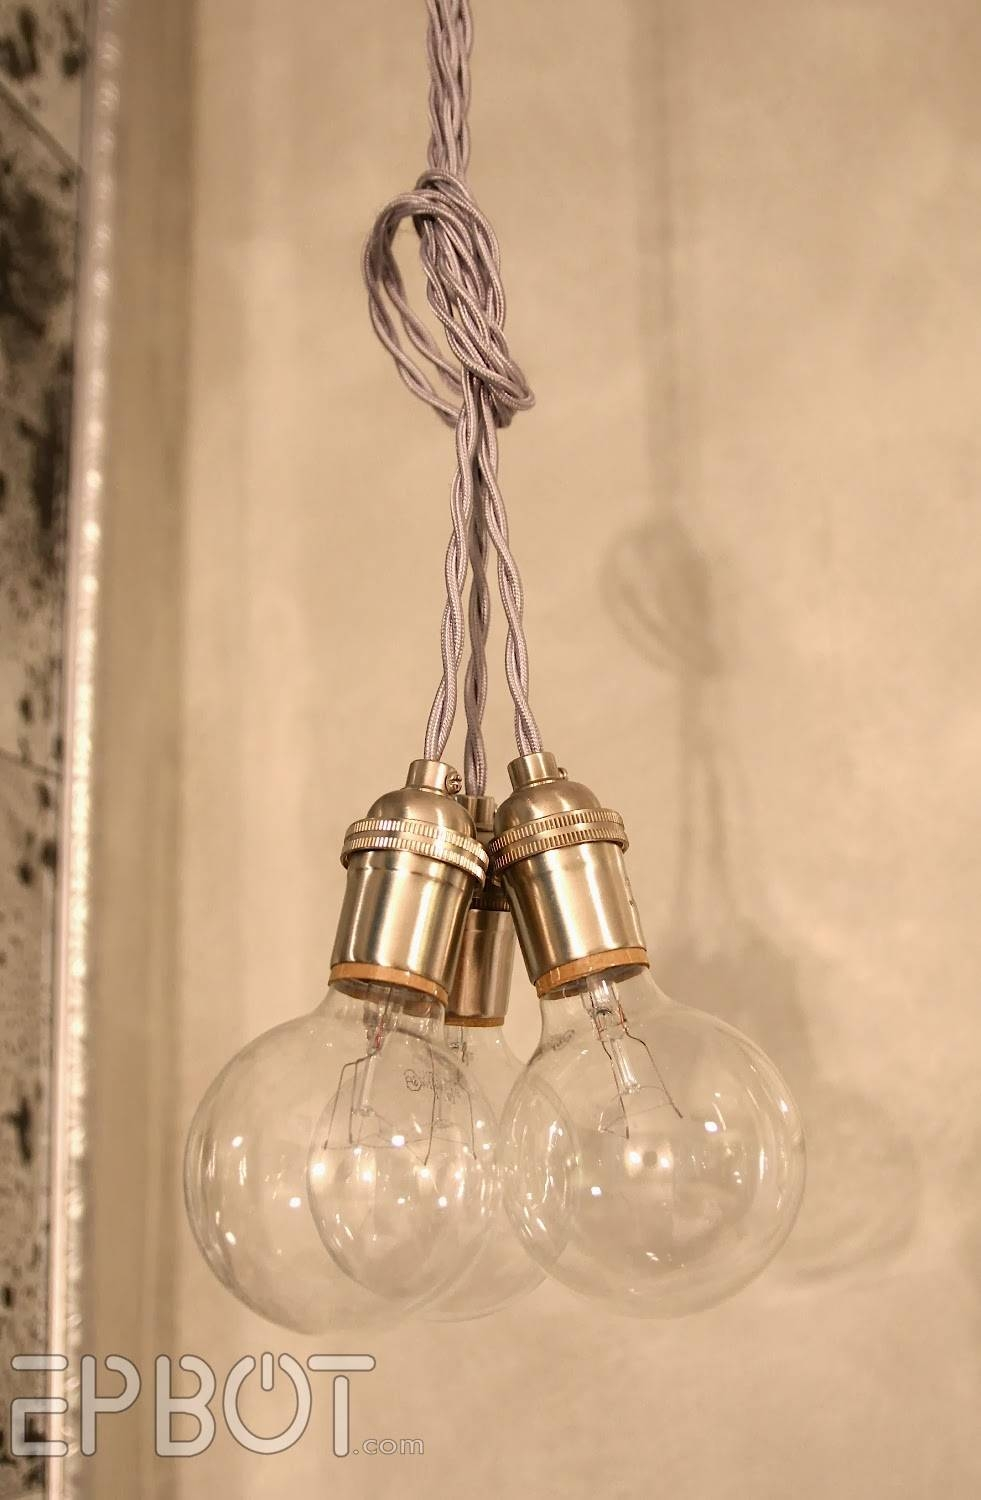 Epbot: Wire Your Own Pendant Lighting - Cheap, Easy, & Fun! regarding Corded Pendant Lights (Image 4 of 15)